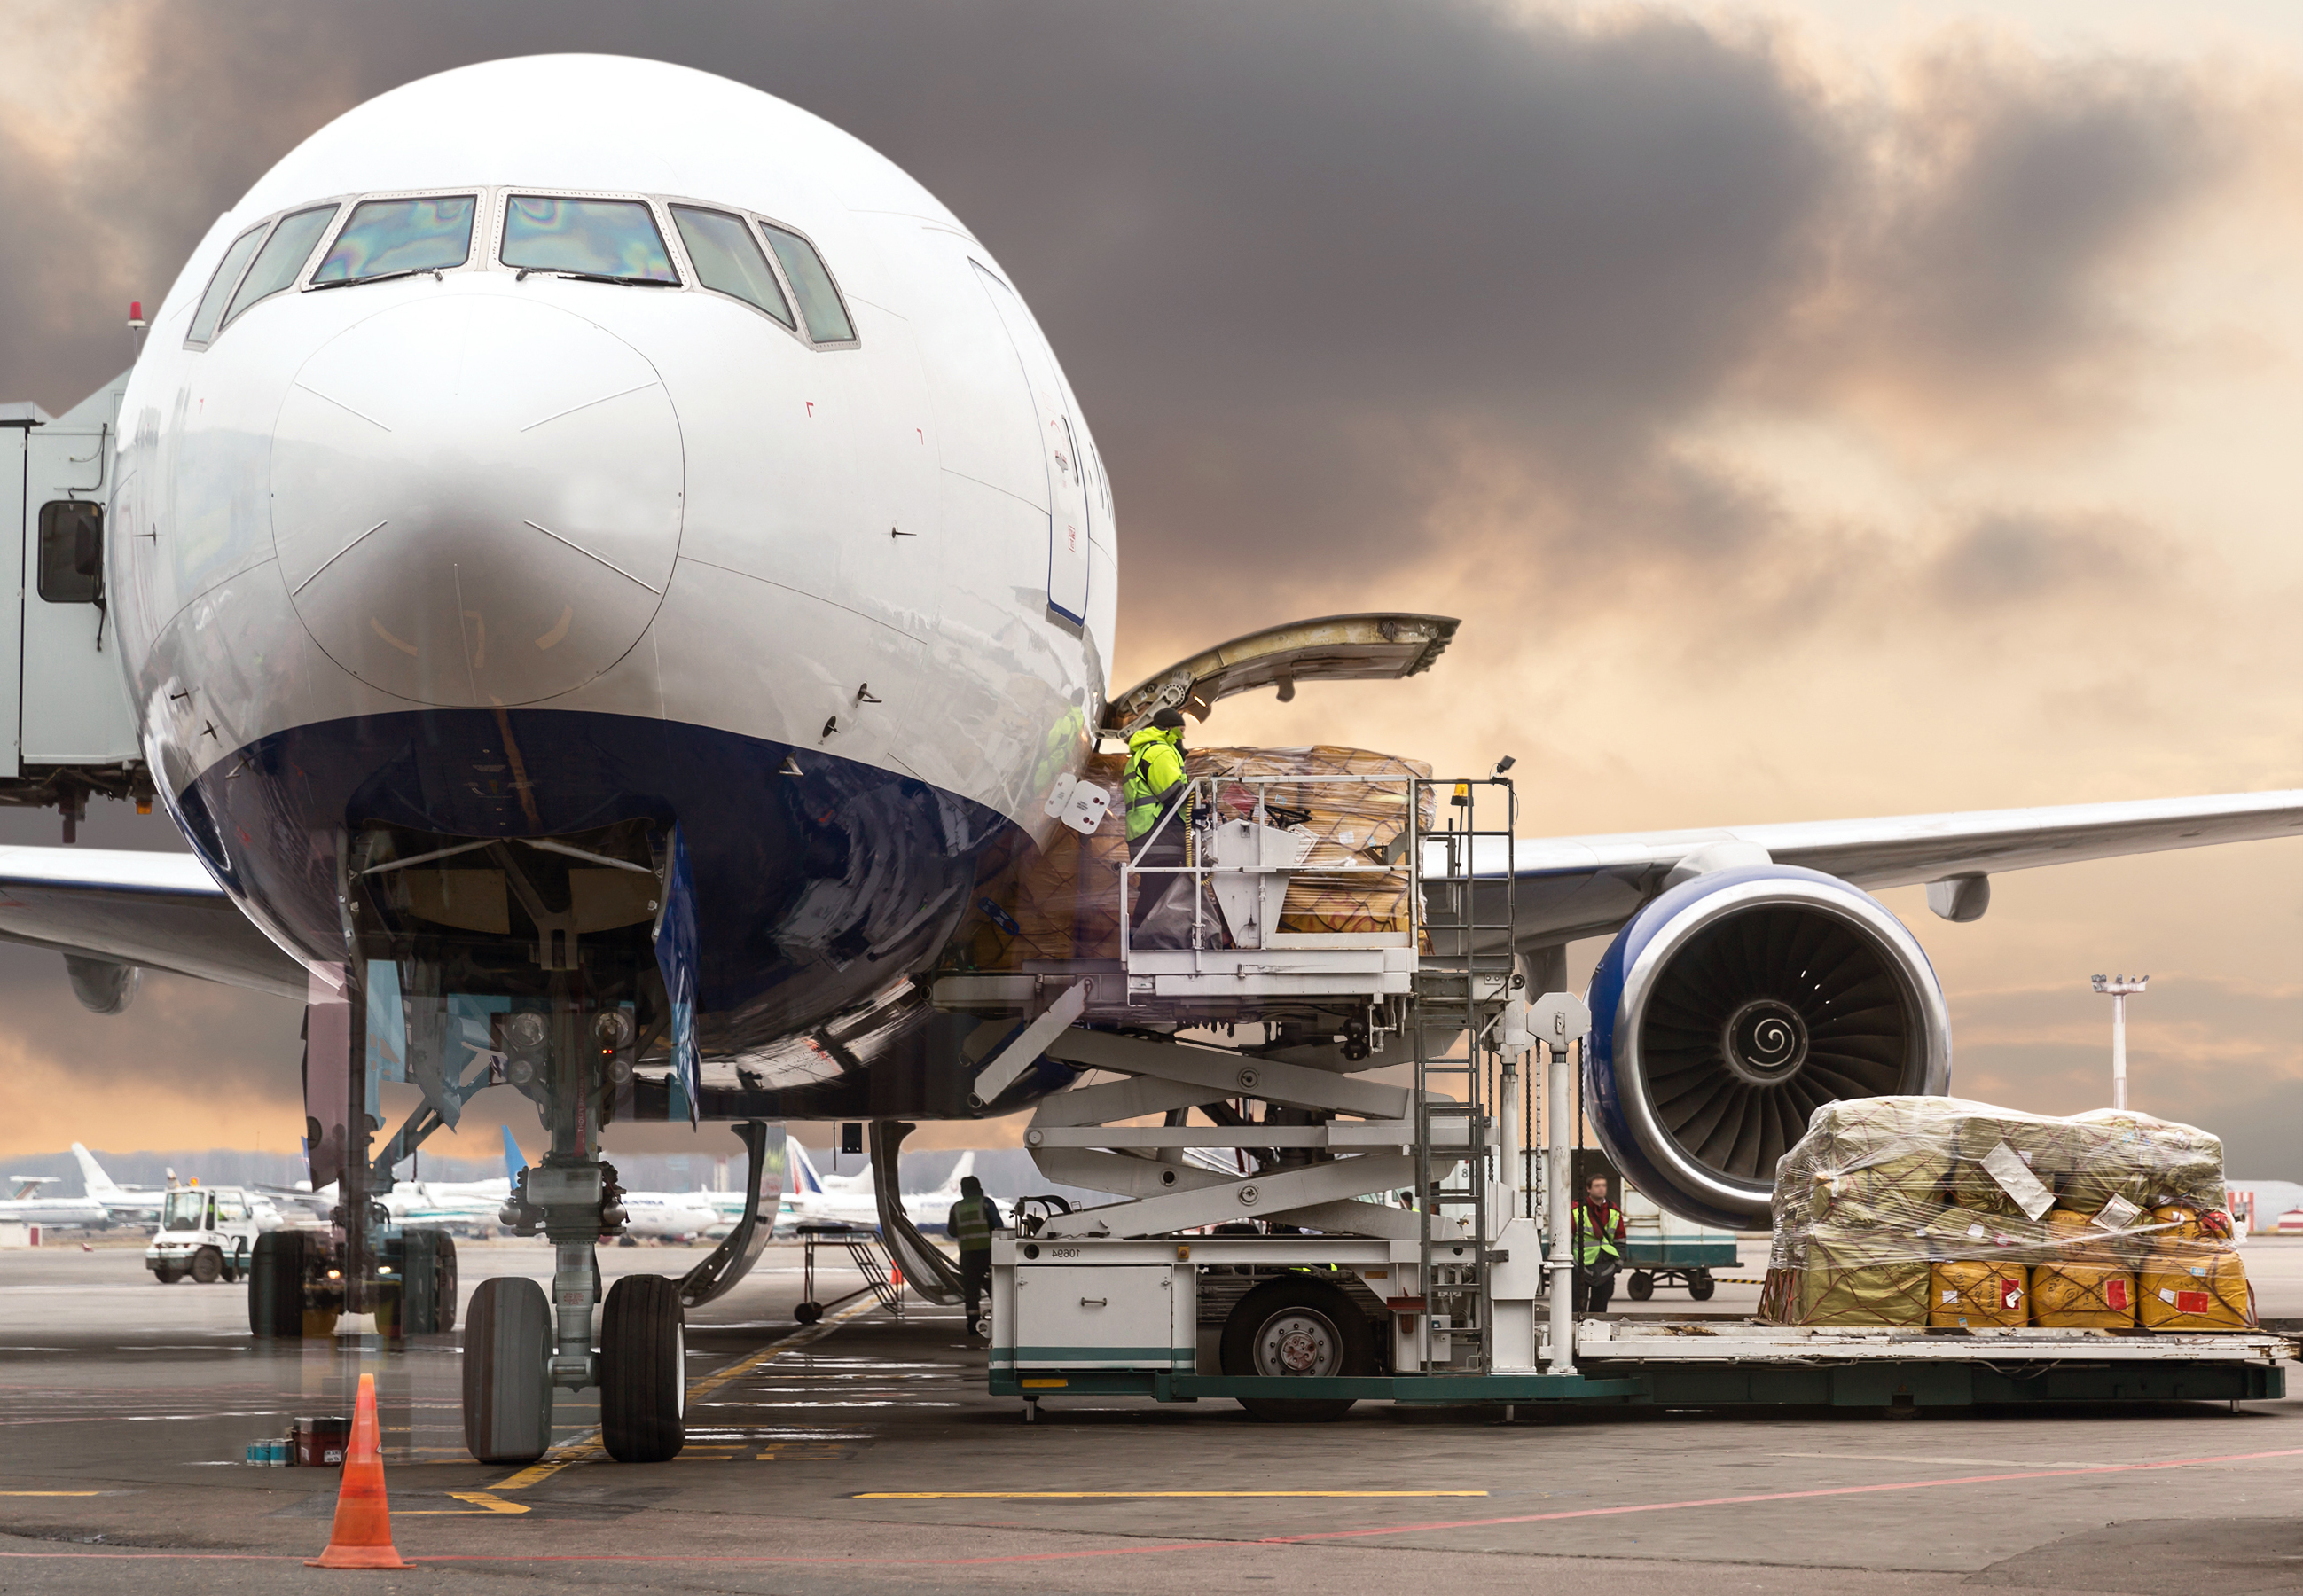 Loading cargo on the plane in airport, v